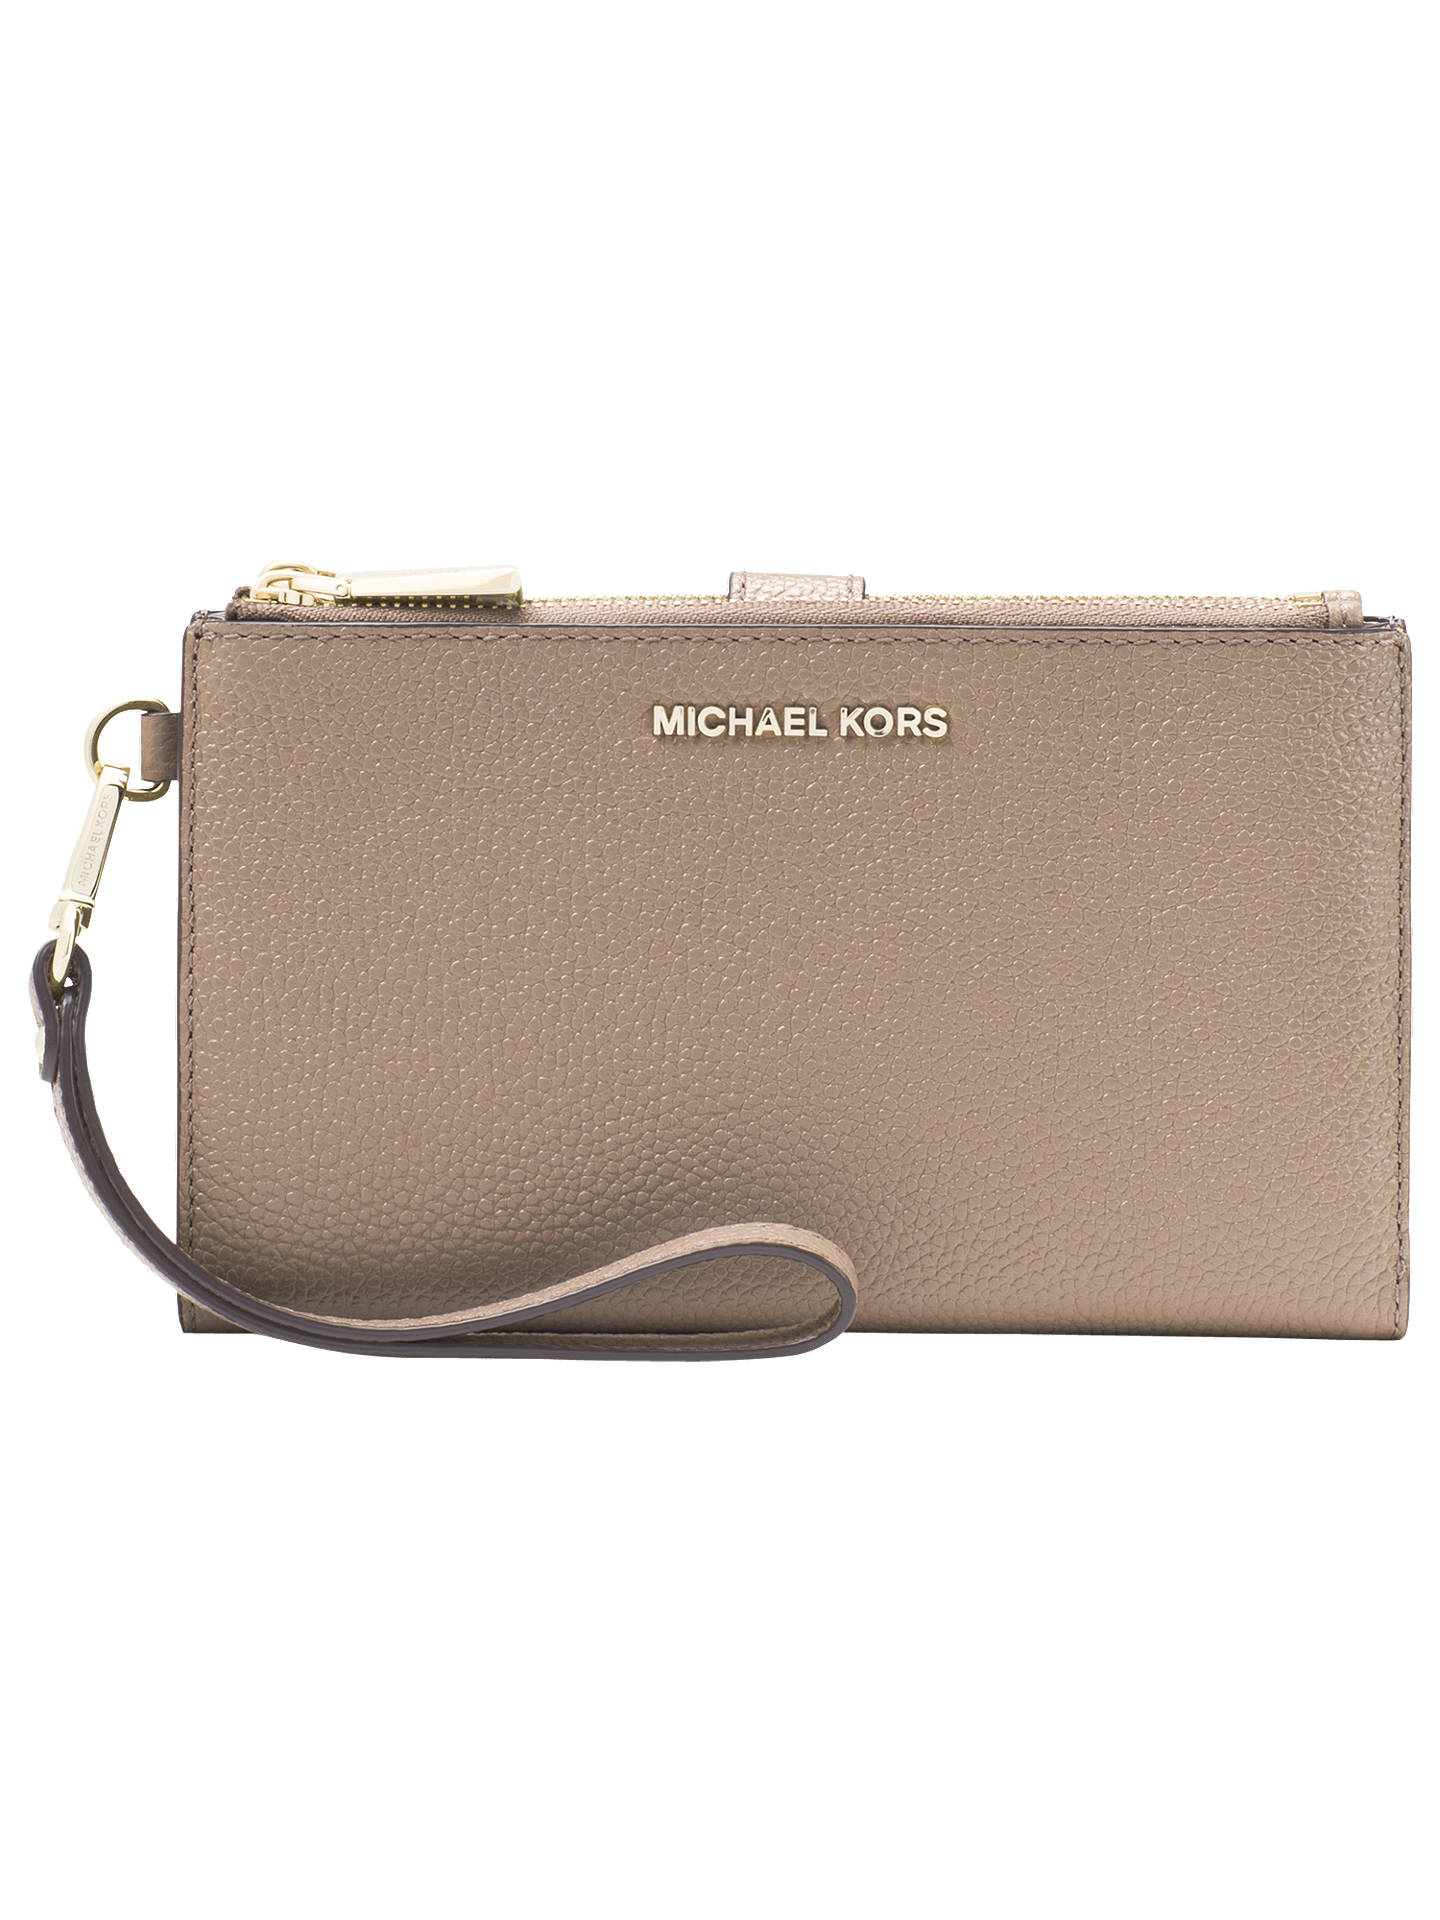 Michael Kors Pouches Clutches Leather Wristlet Purse Truffle Online At Johnlewis